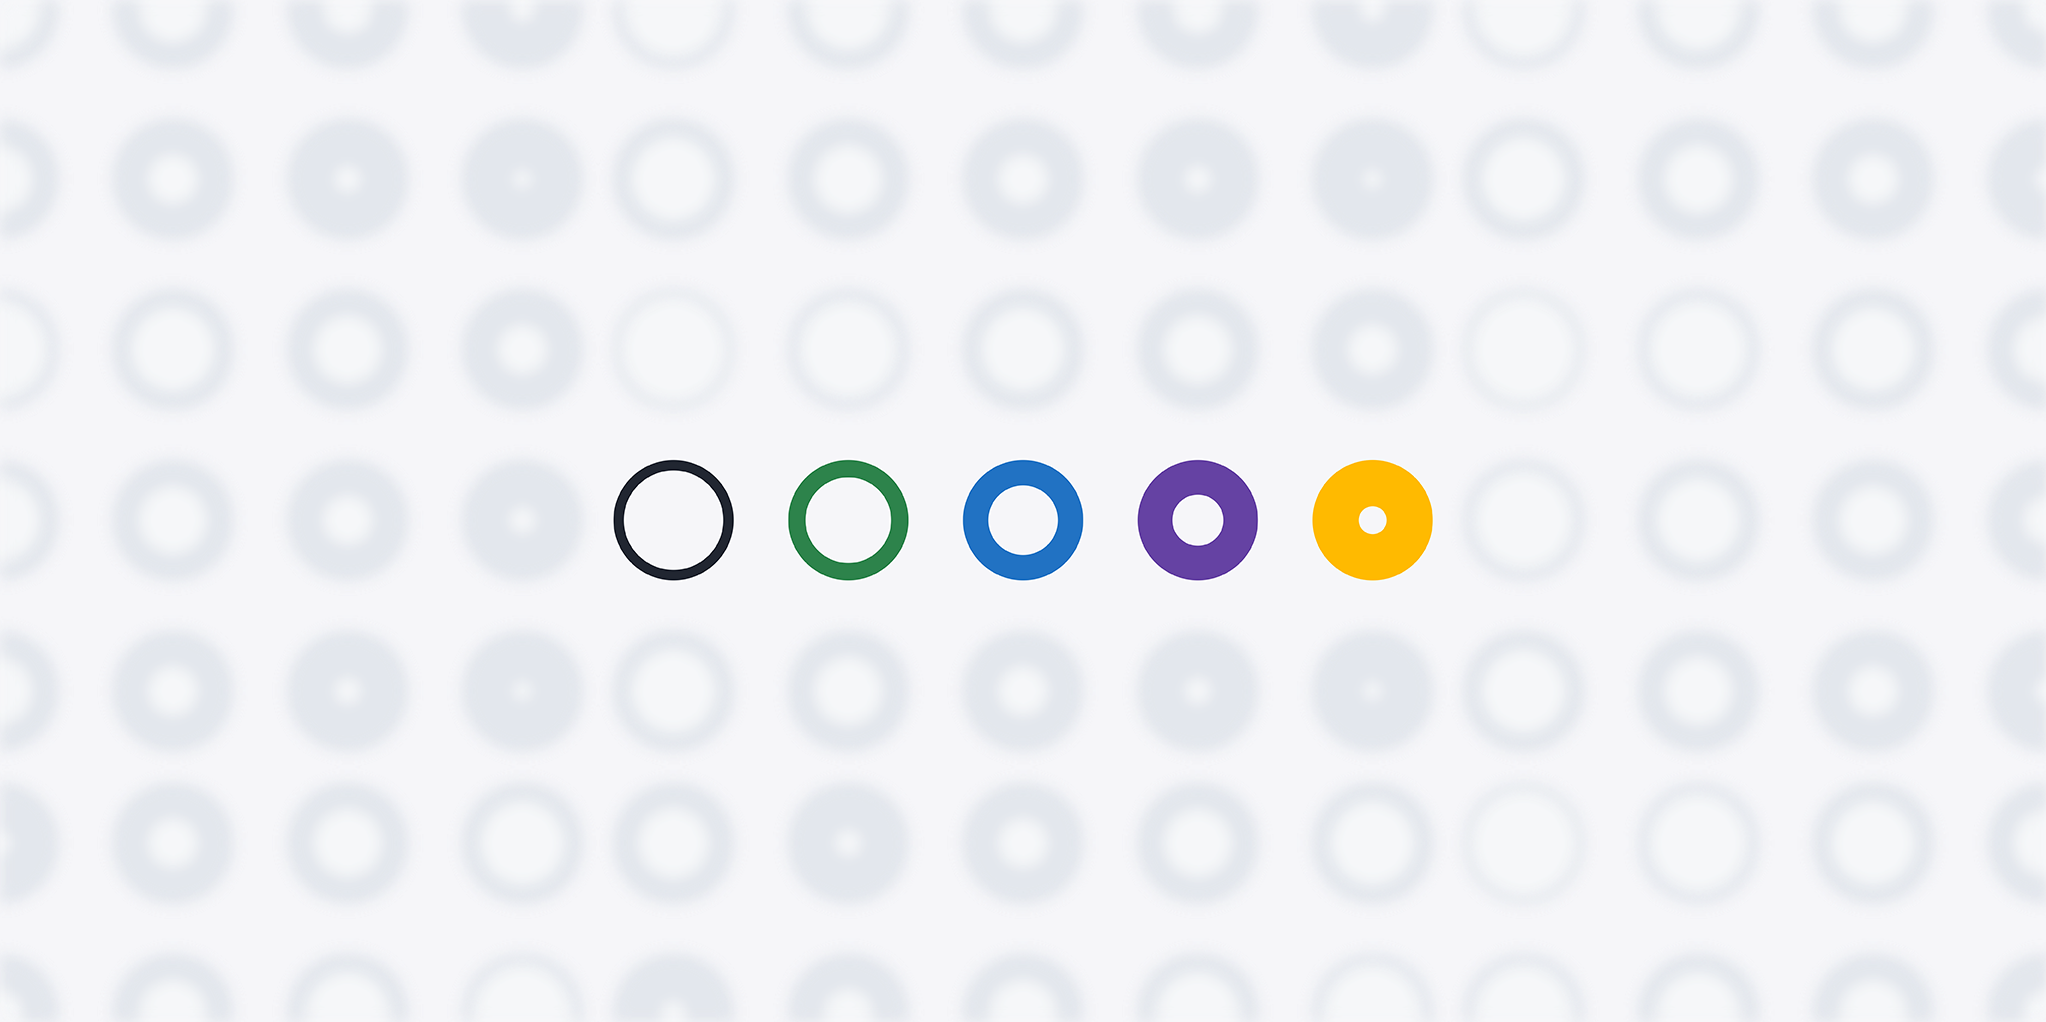 Five colorful, in-focus circles on a background of out of focus gray circles. All with varying space in the middle of the circle.